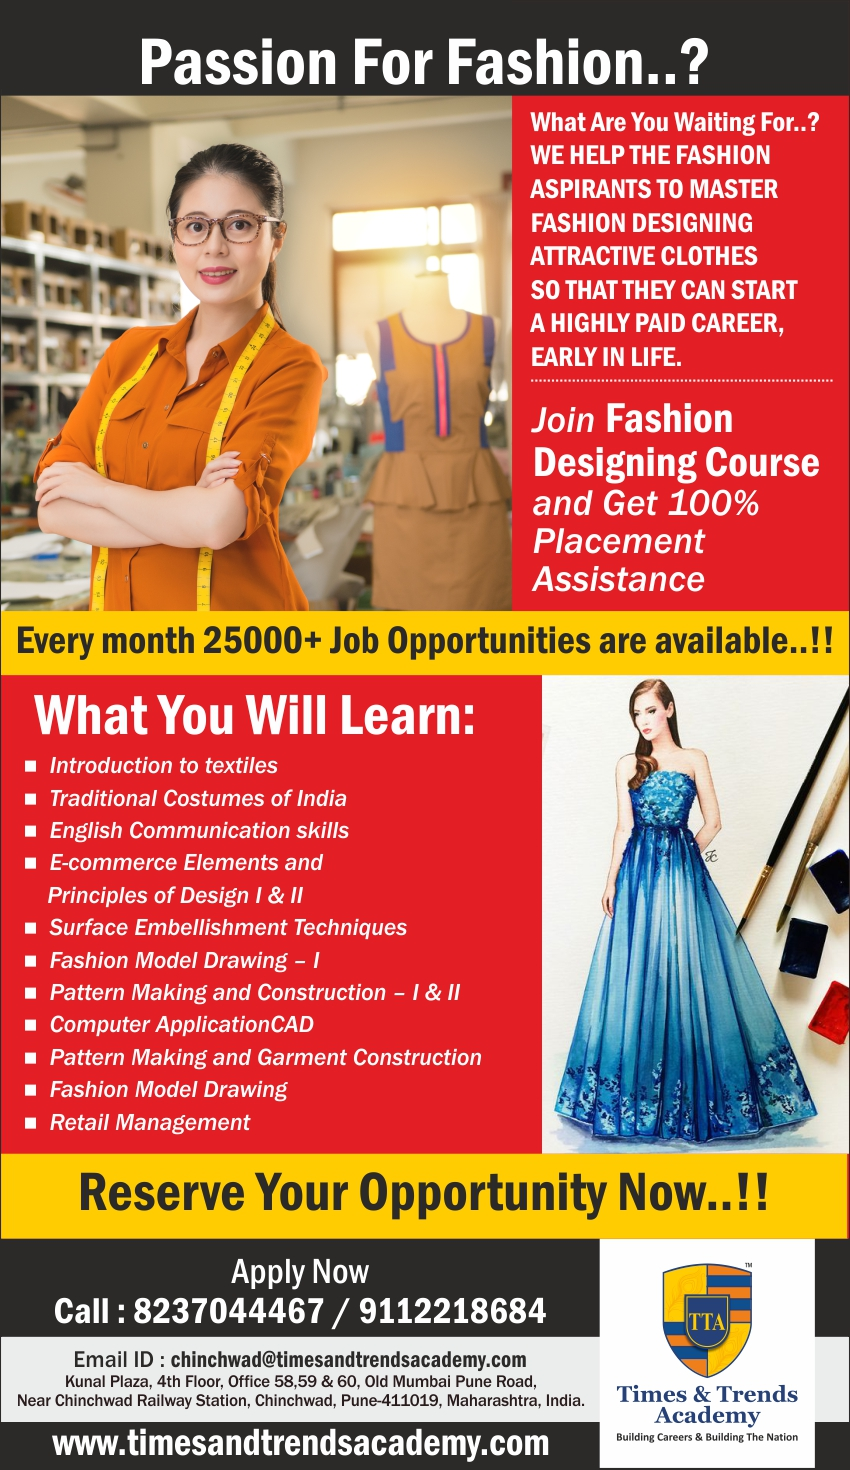 Chinchwad Landing Page Times And Trends Academy Tta